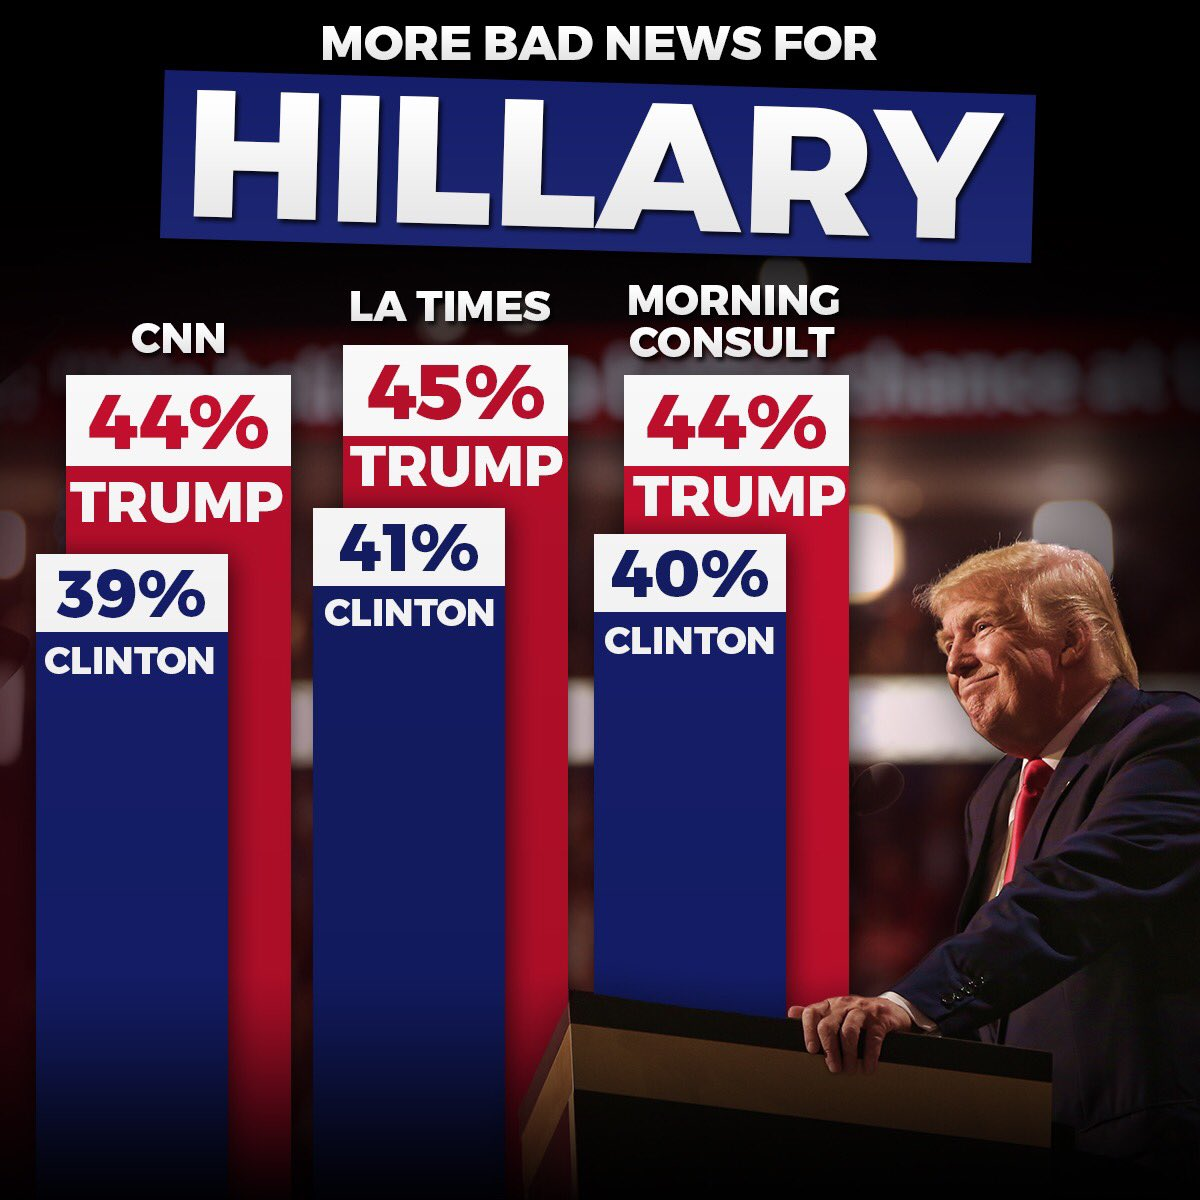 Bad news for Hillary